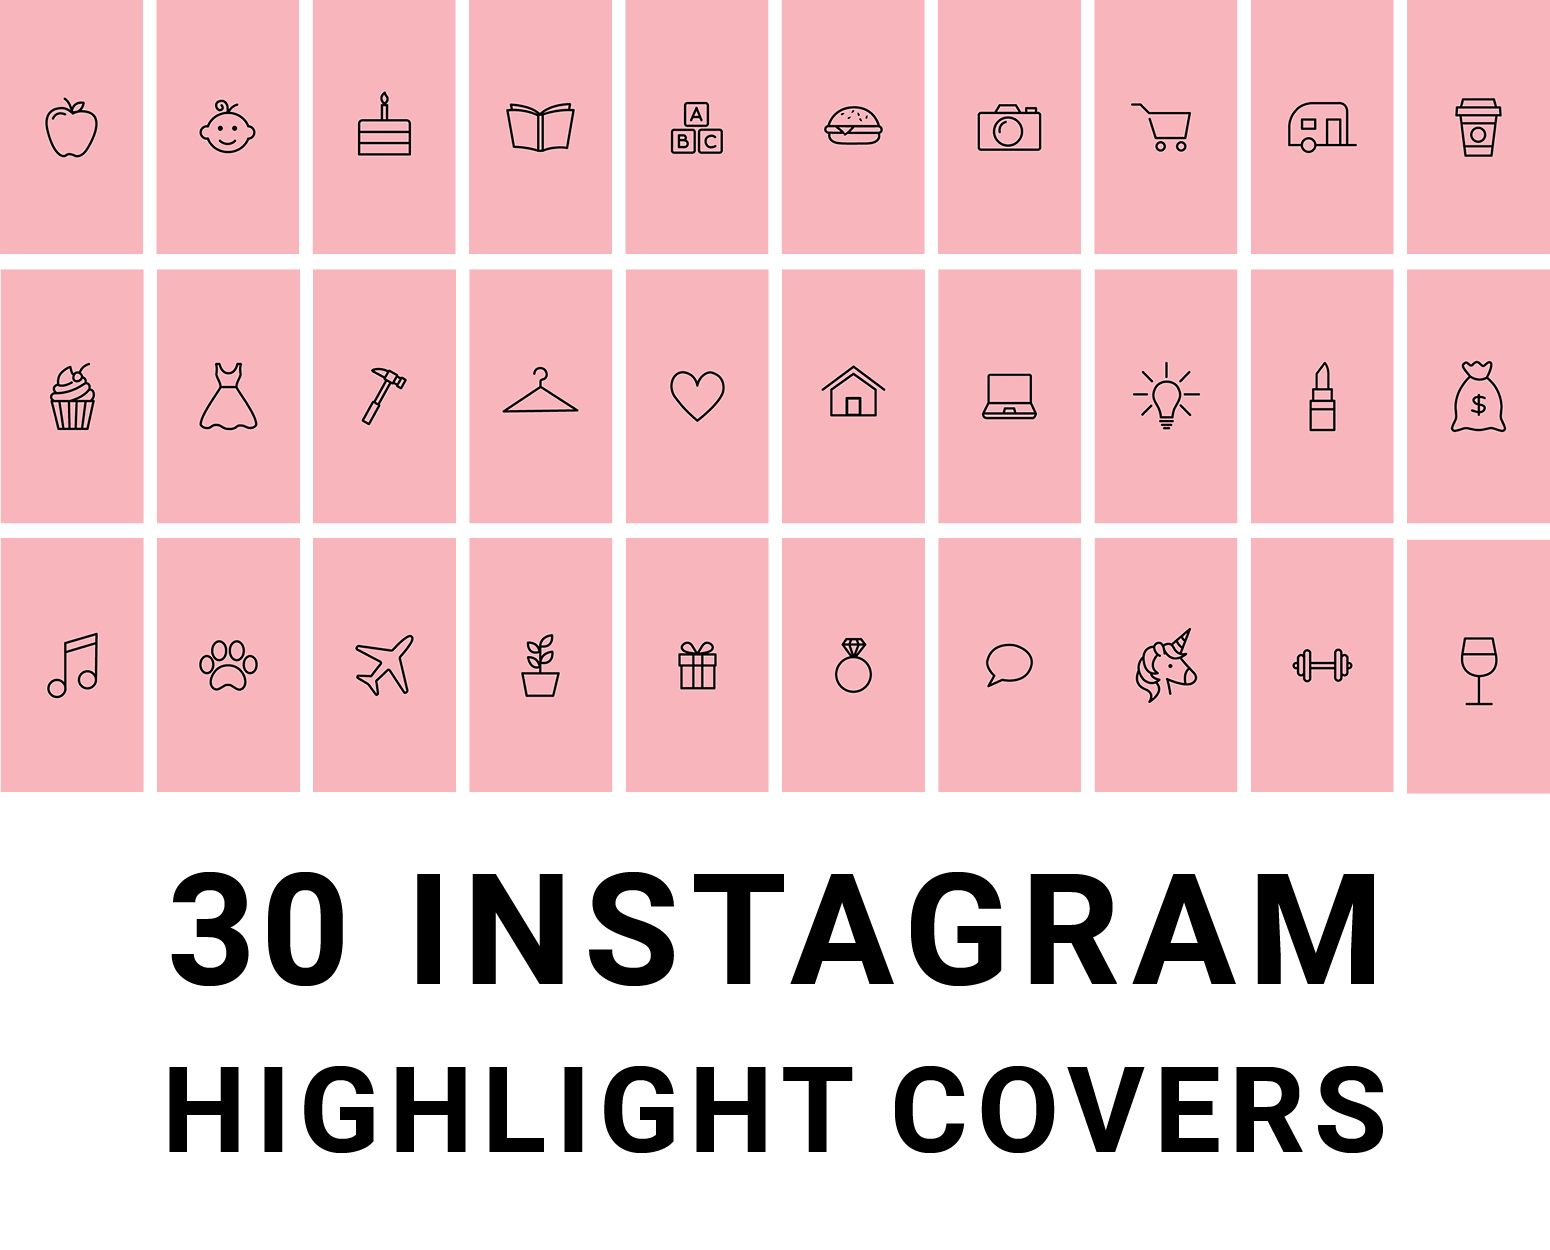 Blush Pastel Pink And Black Instagram Highlights Icon Covers